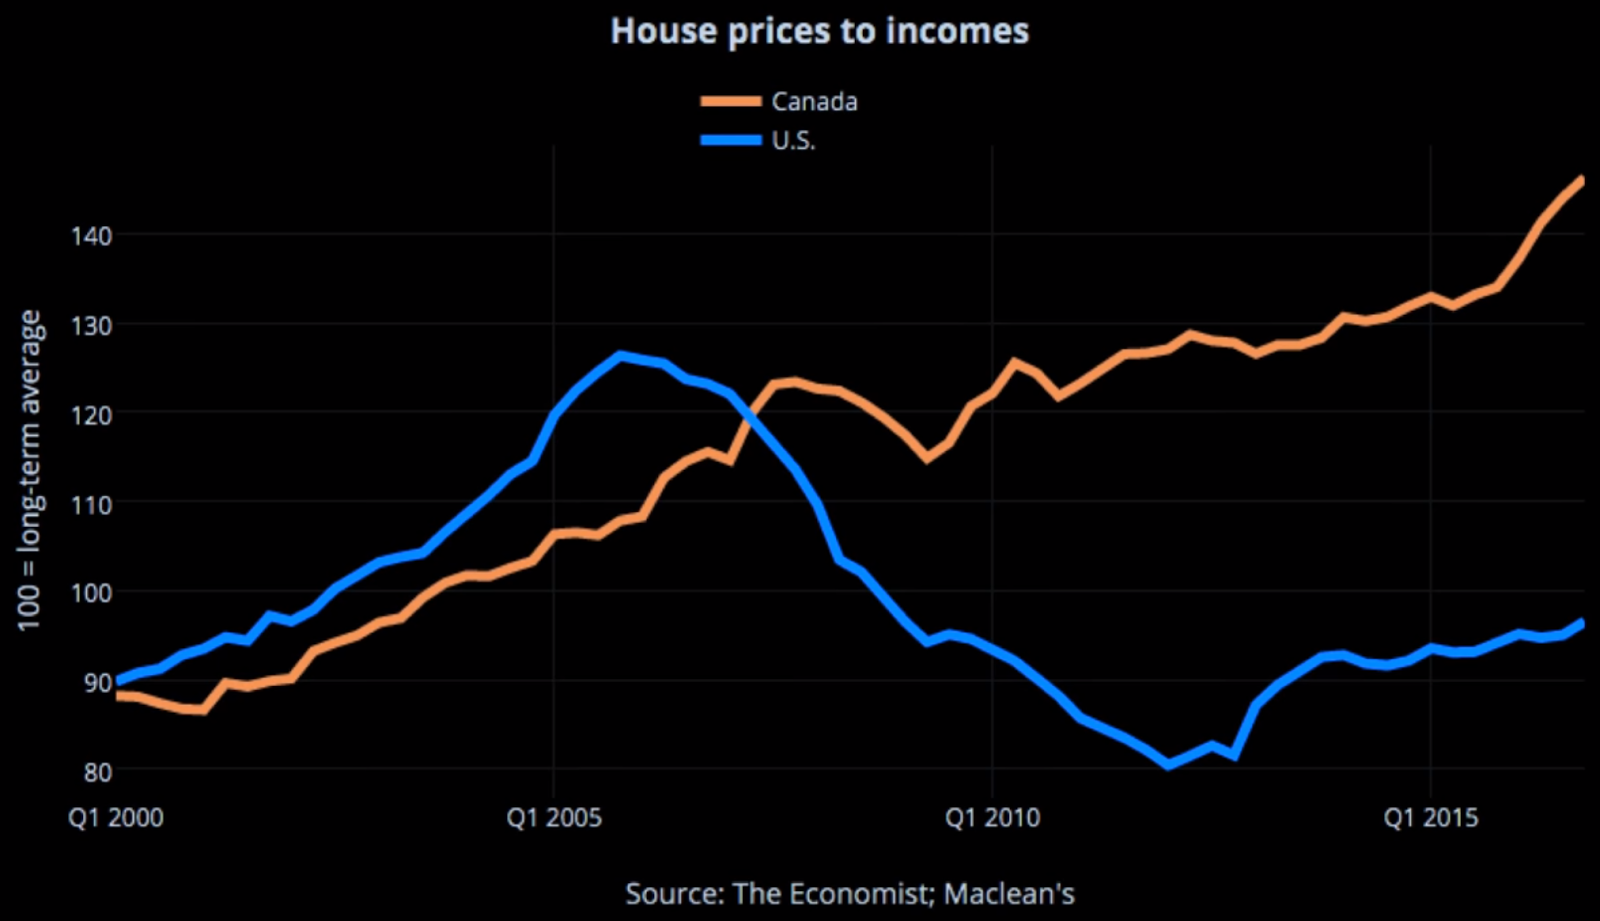 House Prices to Incomes in the US and Canada